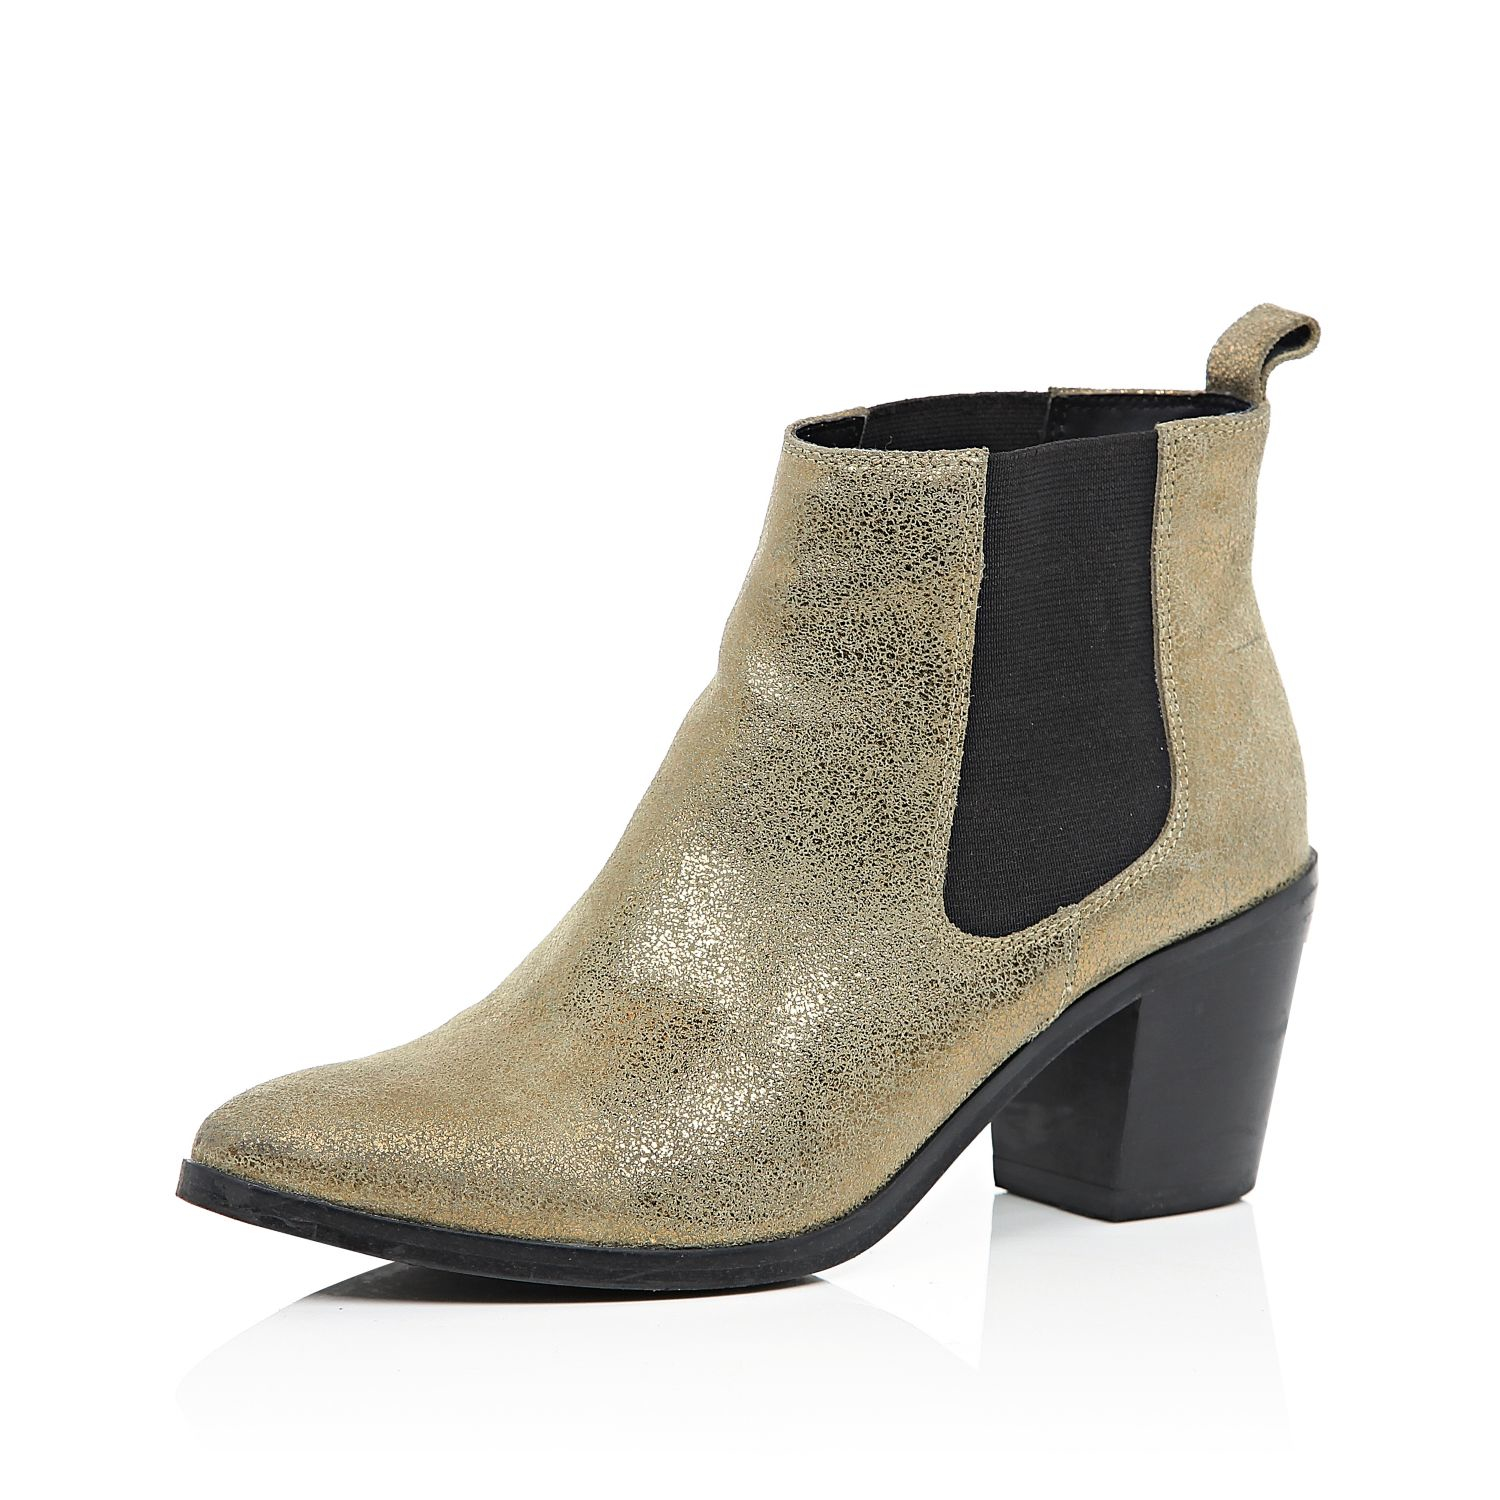 River island Gold Leather Mid Heel Chelsea Boots in Metallic | Lyst